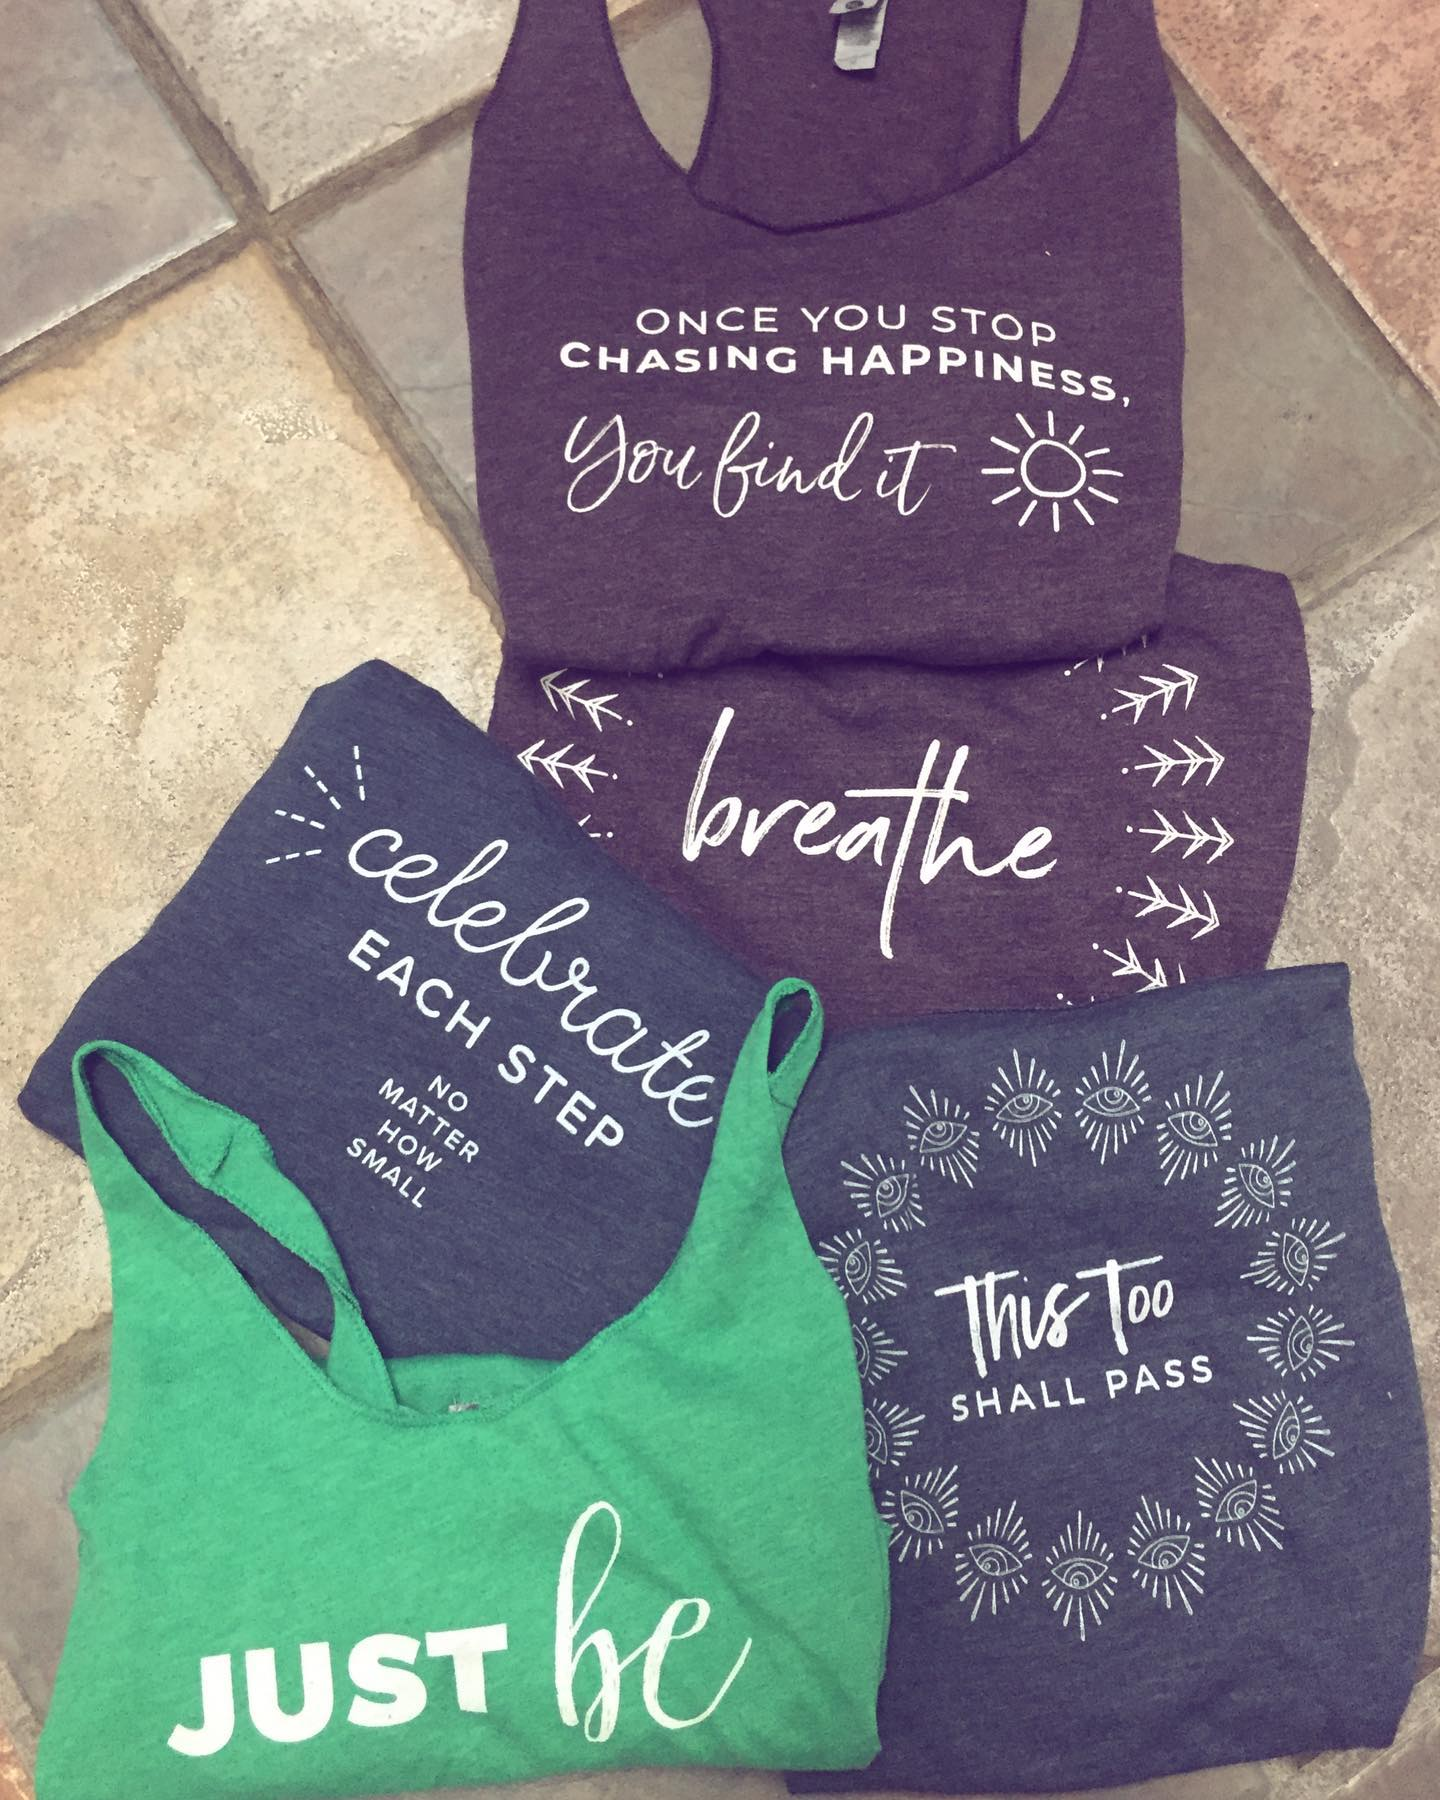 Brought just a few of my favorite tanks on this trip.  The messages still empower and center me, even after all these years. Plus they're pretty much all I wear when I work out. 🤷🏽♀️Tank tops come in Indigo, Envy, and Vintage Purple tri-blend... and are super soft and comfortable. 5% of net proceeds goes to @mentalhealthamerica.